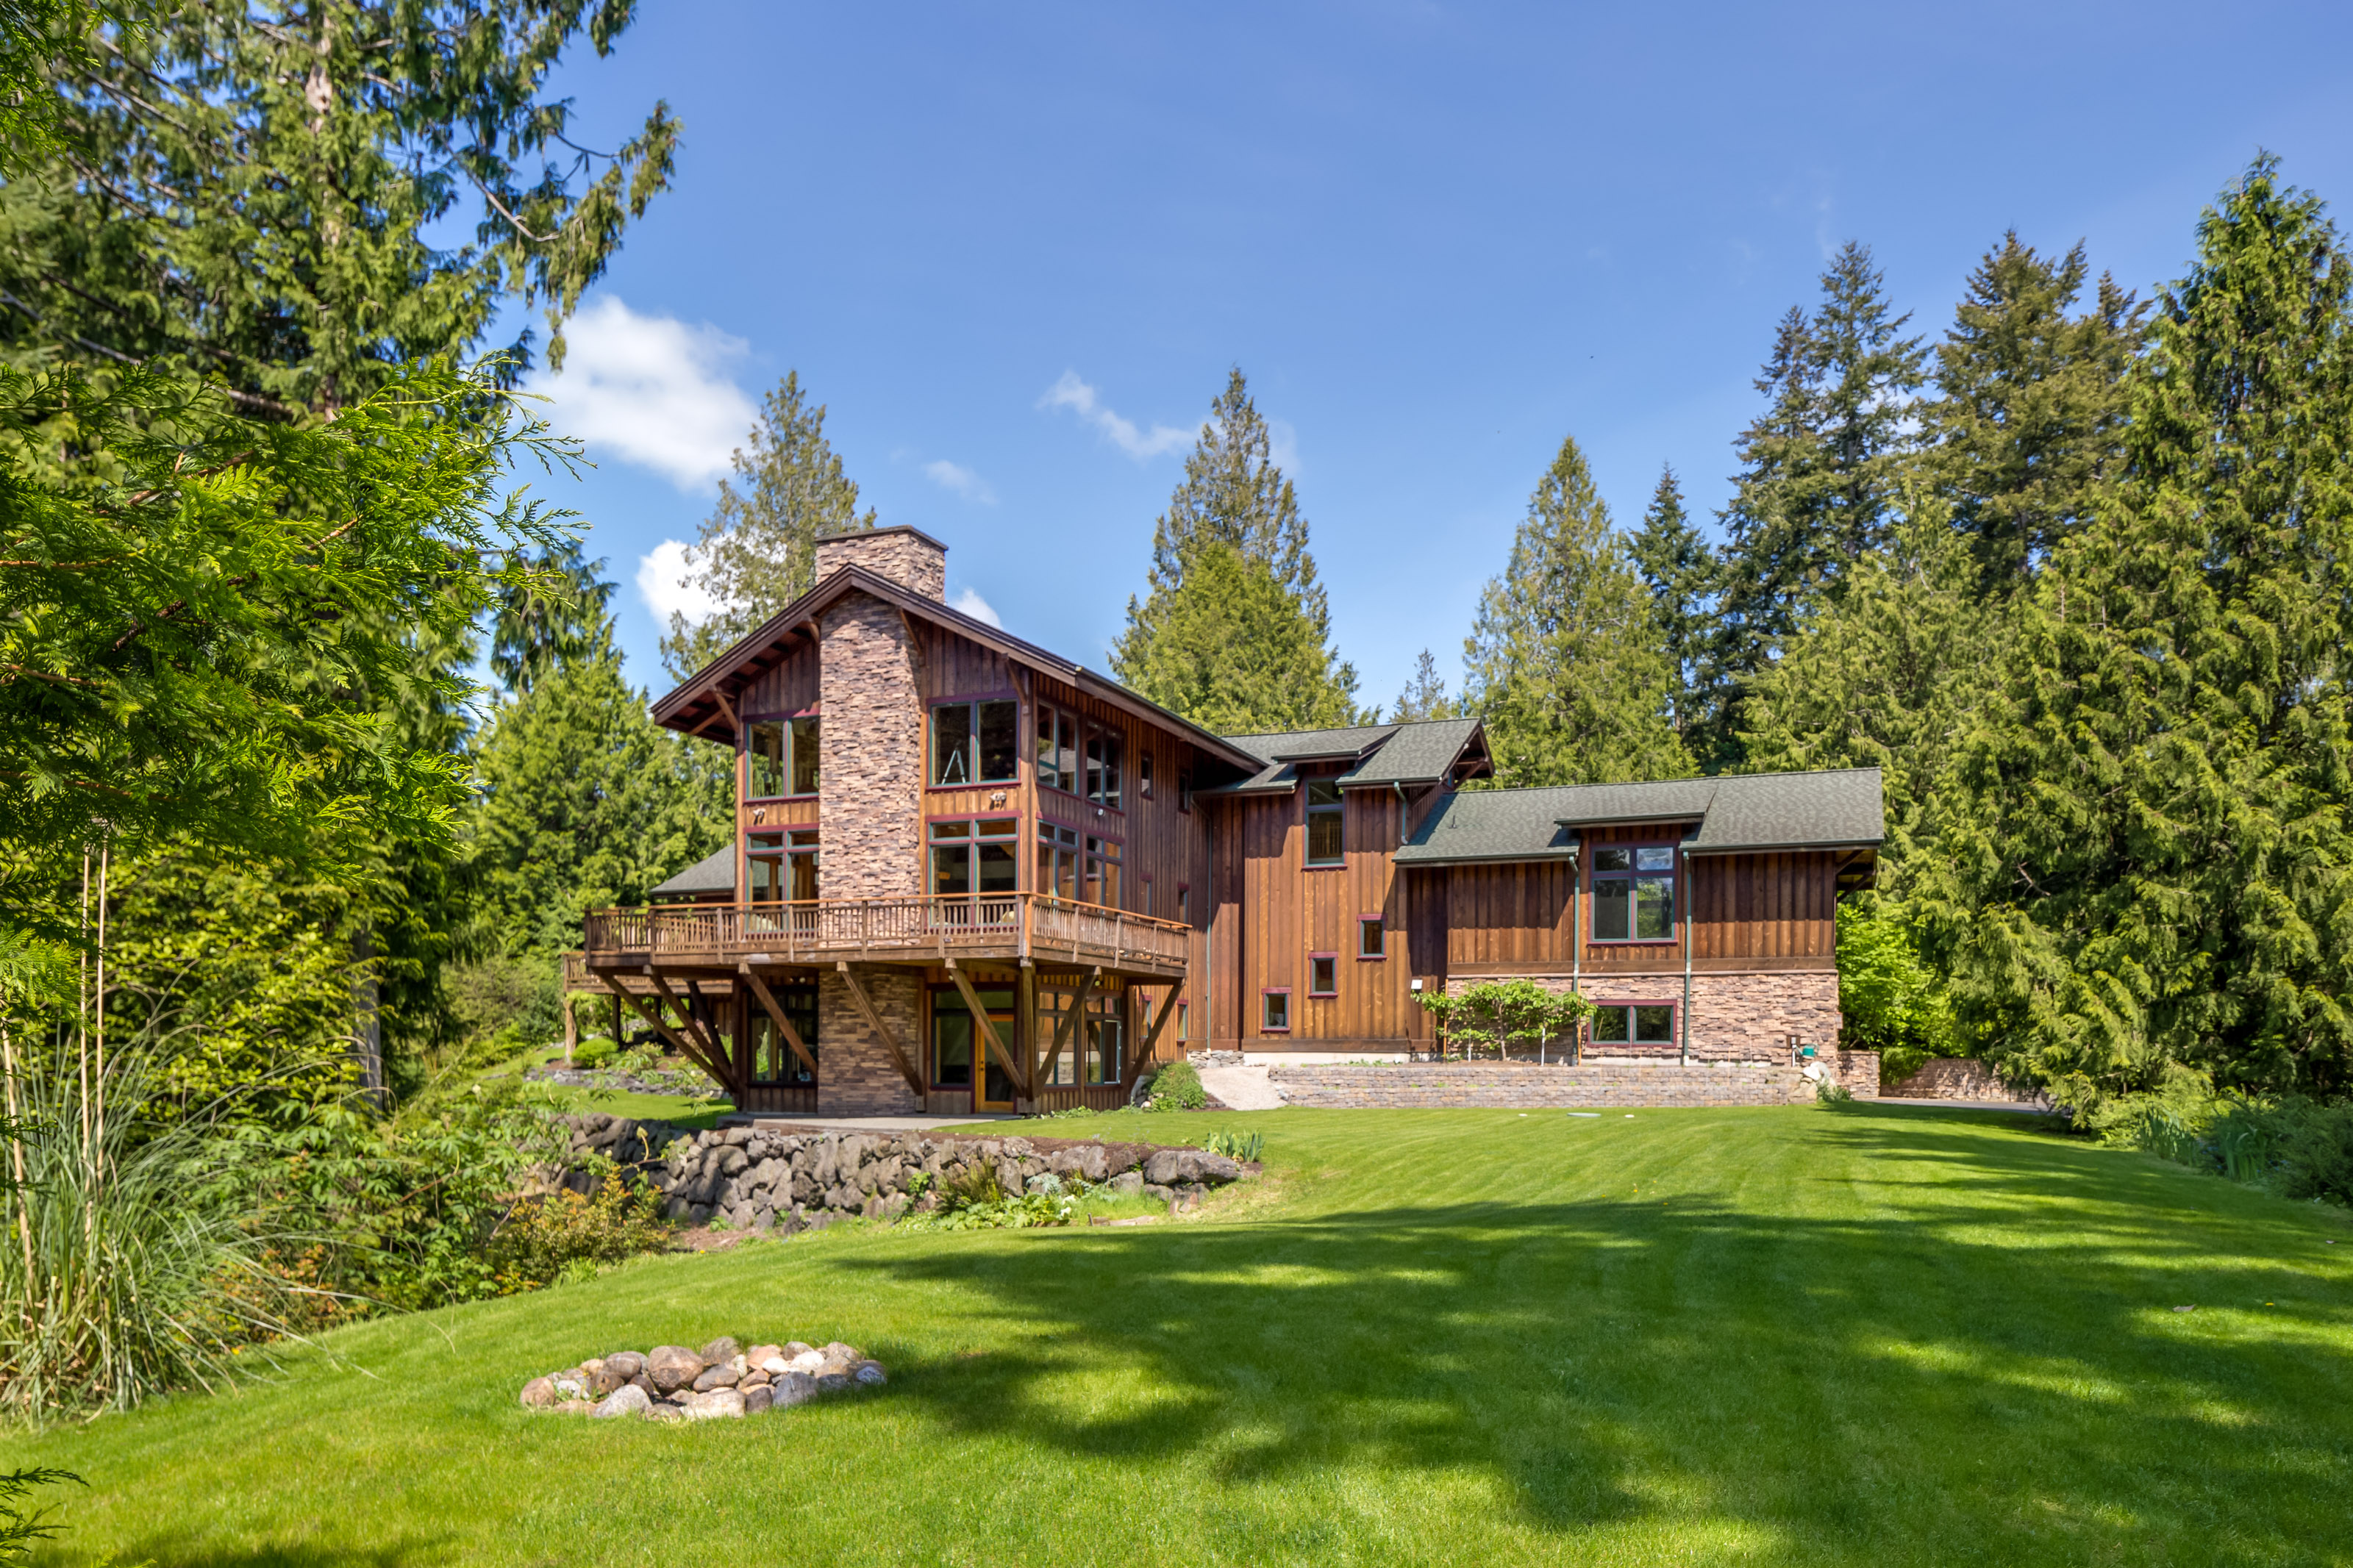 Single Family Home for Sale at Extraordinary 9 Acre Retreat 3905 Palomino Dr NE Bainbridge Island, Washington 98110 United States